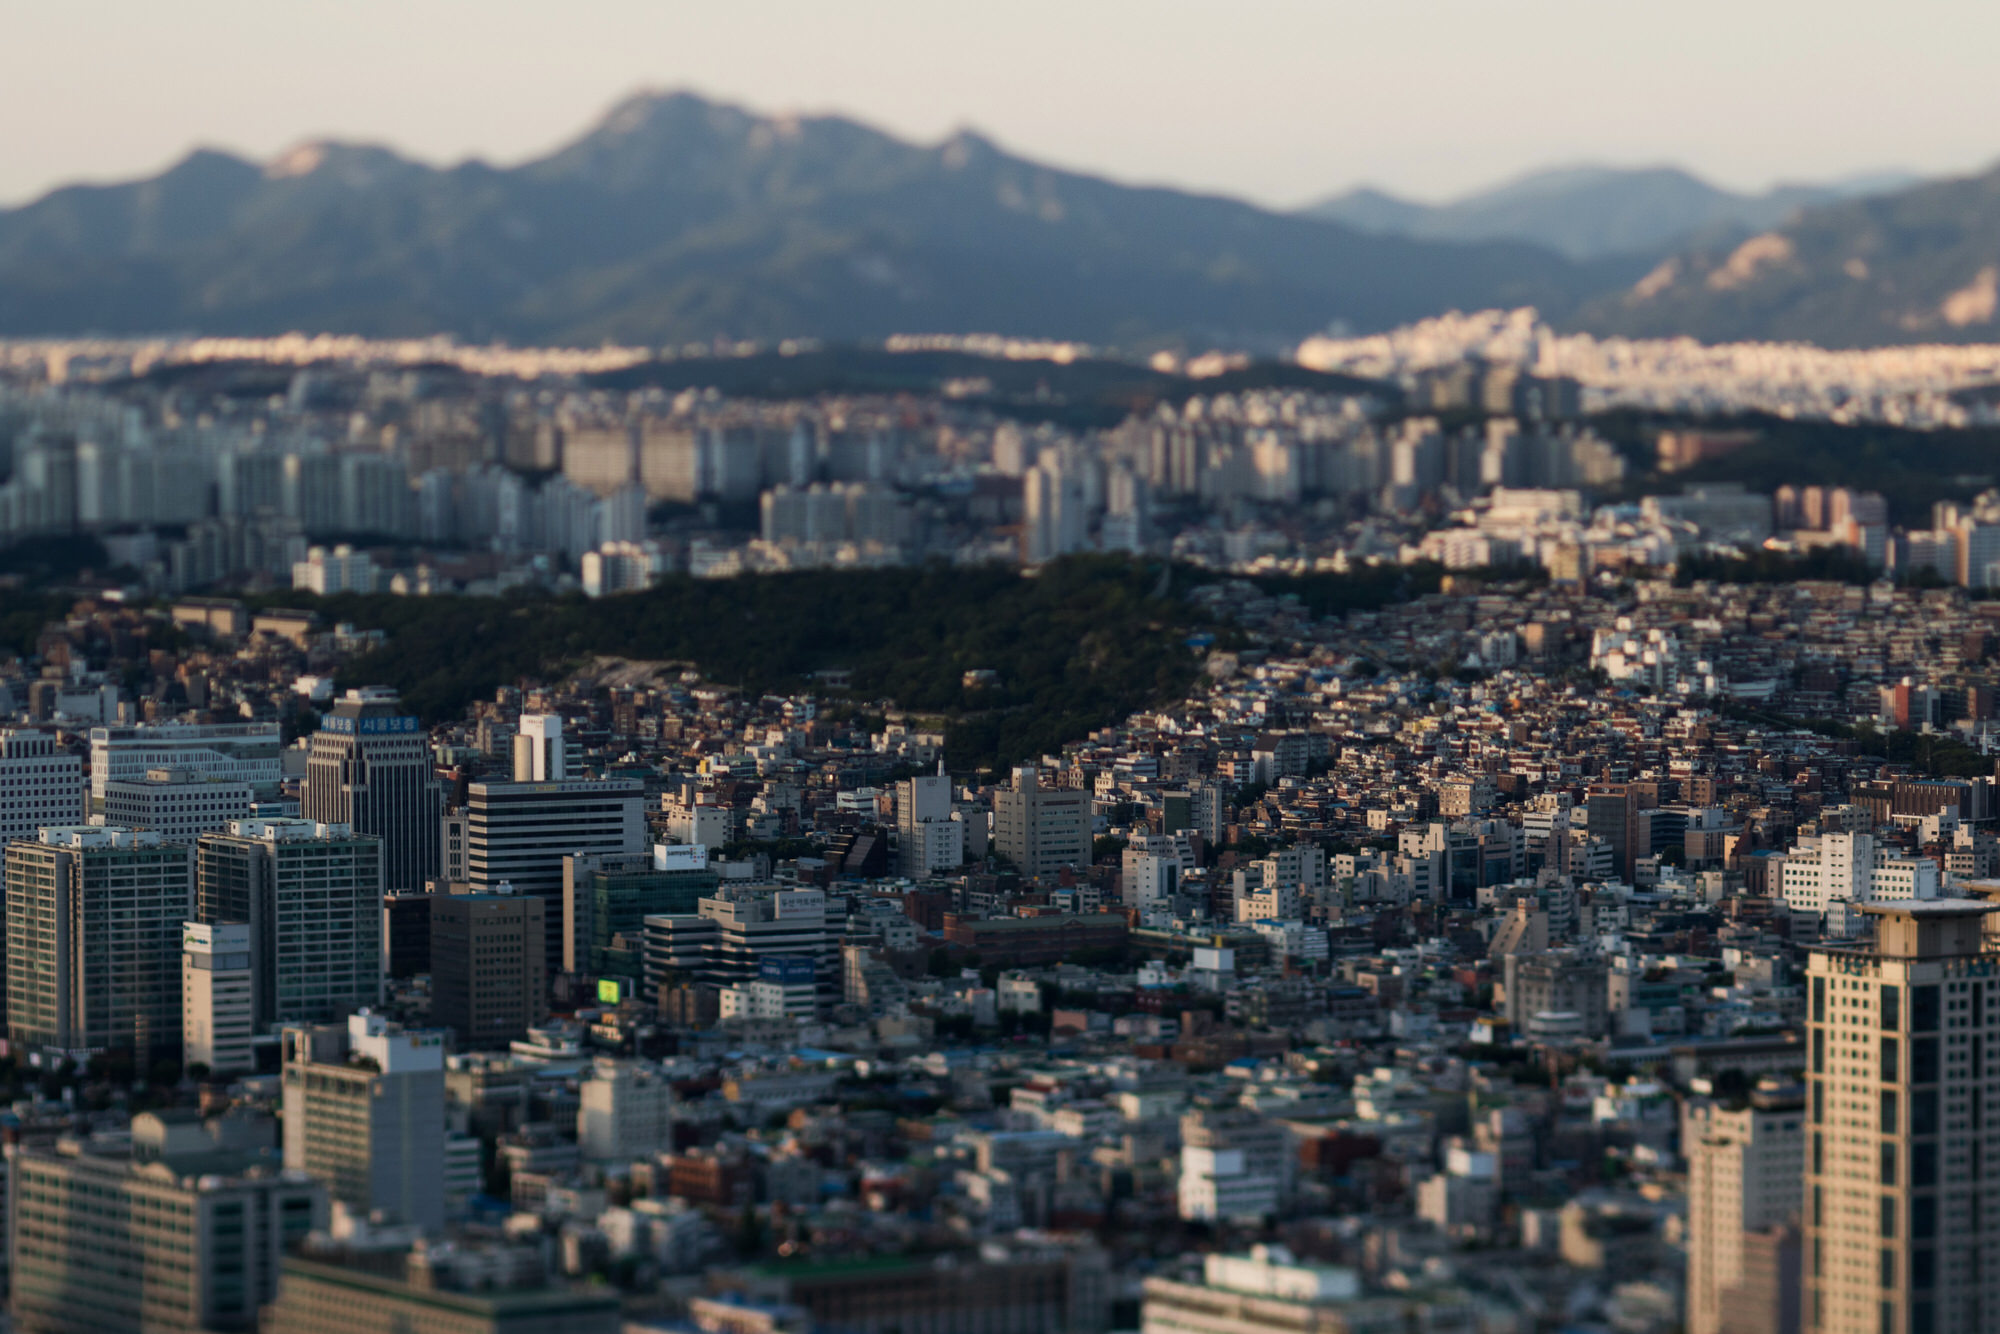 Buildings stand in this photograph taken with a tilt-shift lens in Seoul, South Korea, on Thursday, July 16, 2015. A report on July 23 may show that South Korea's economy expanded 2.3 percent in the second quarter, which would be the slowest pace in more than two years, according to the median estimate in a Bloomberg survey. Photographer: SeongJoon Cho/Bloomberg